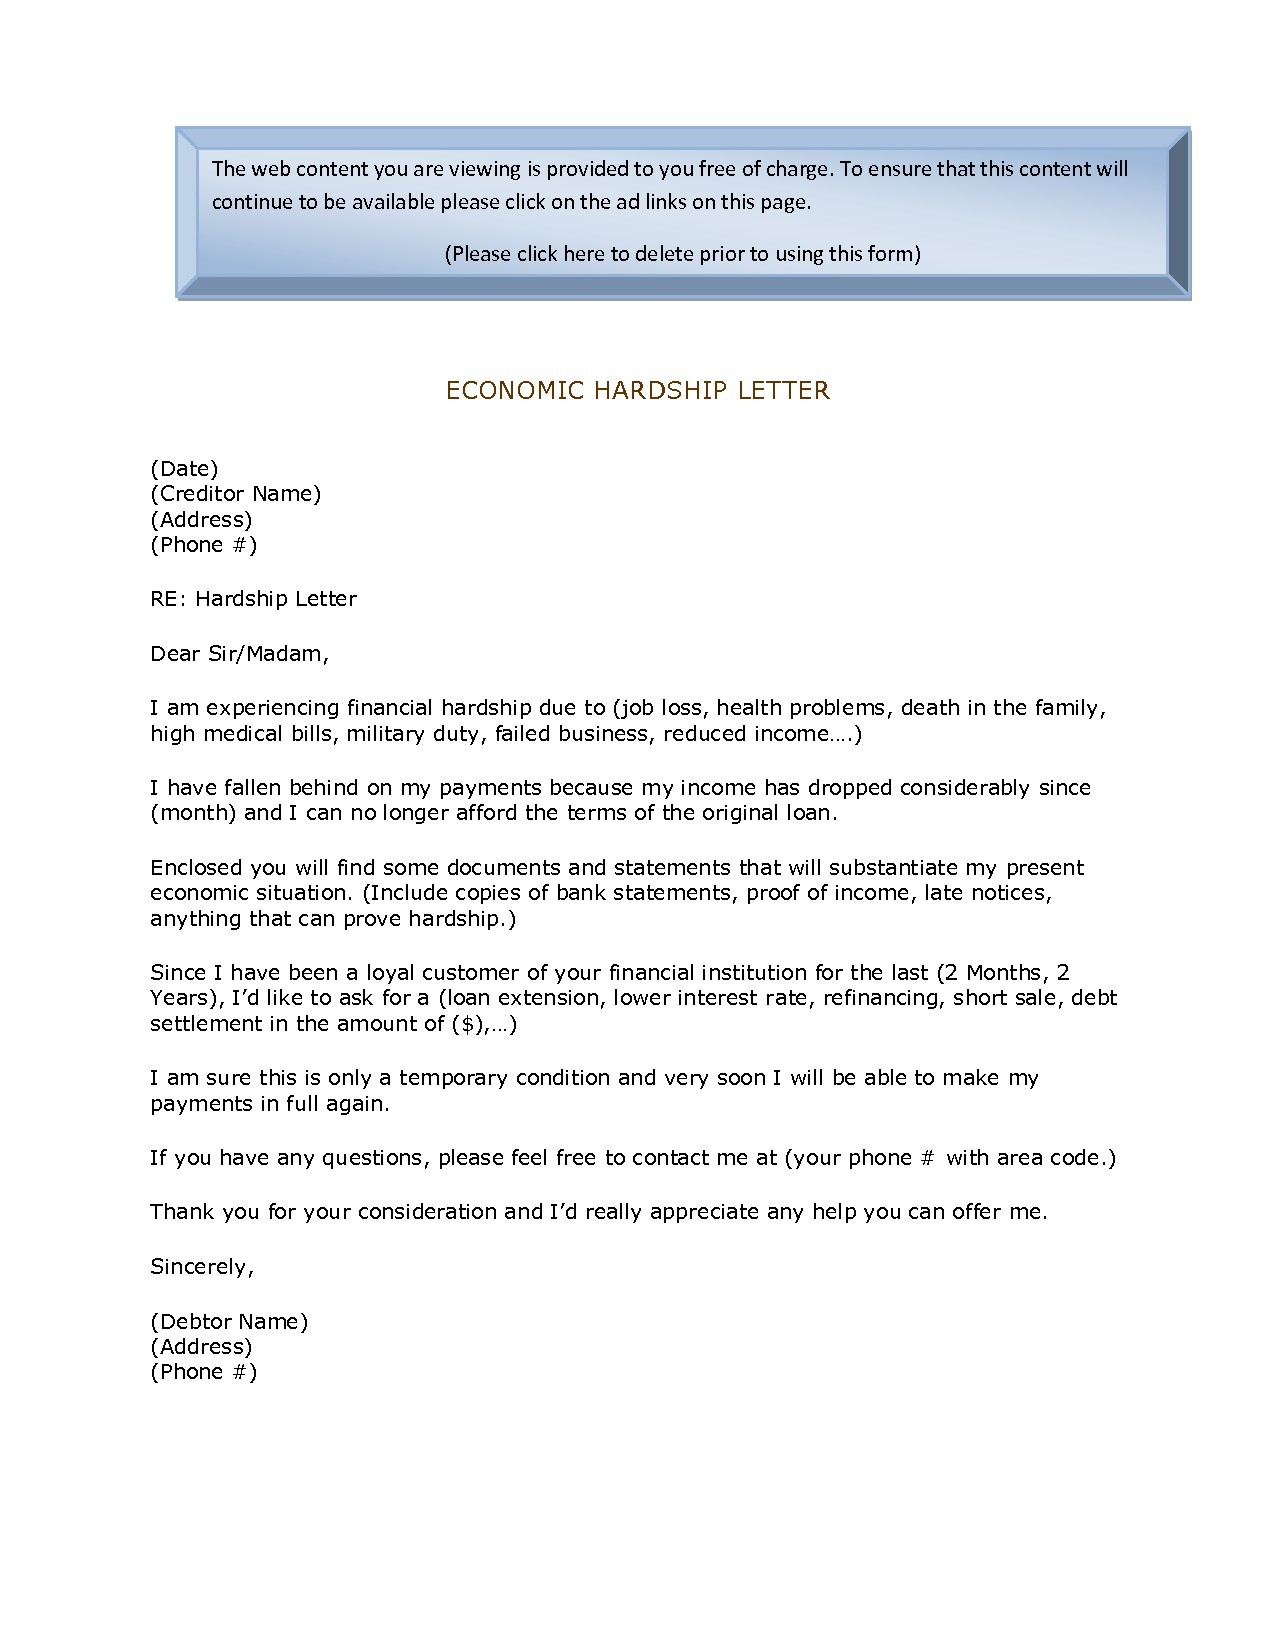 Mortgage Hardship Letter Template - How to Write A Hardship Letter